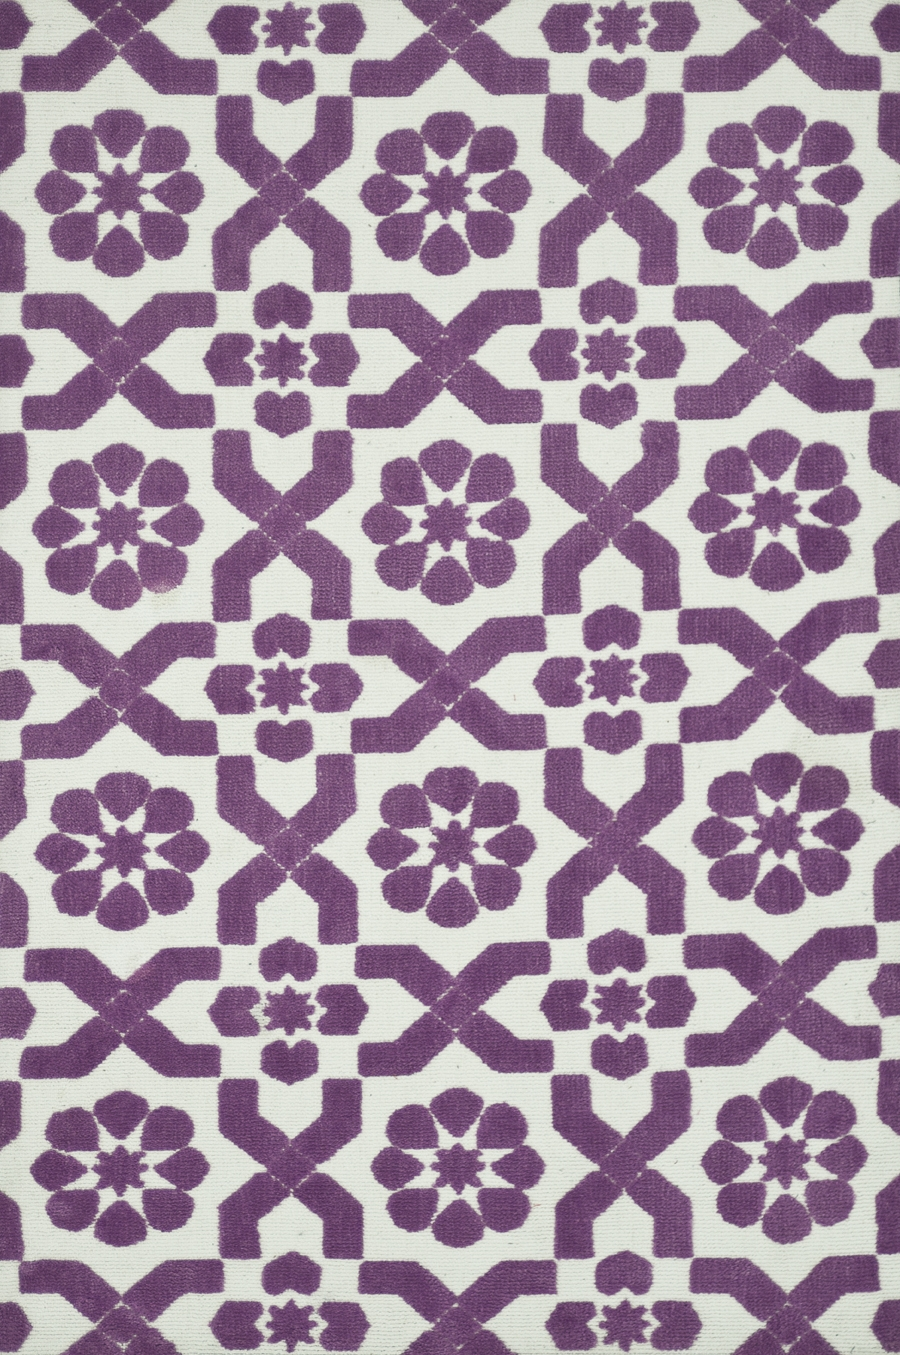 Loloi Piper PI-03 Plum Fairies Rug